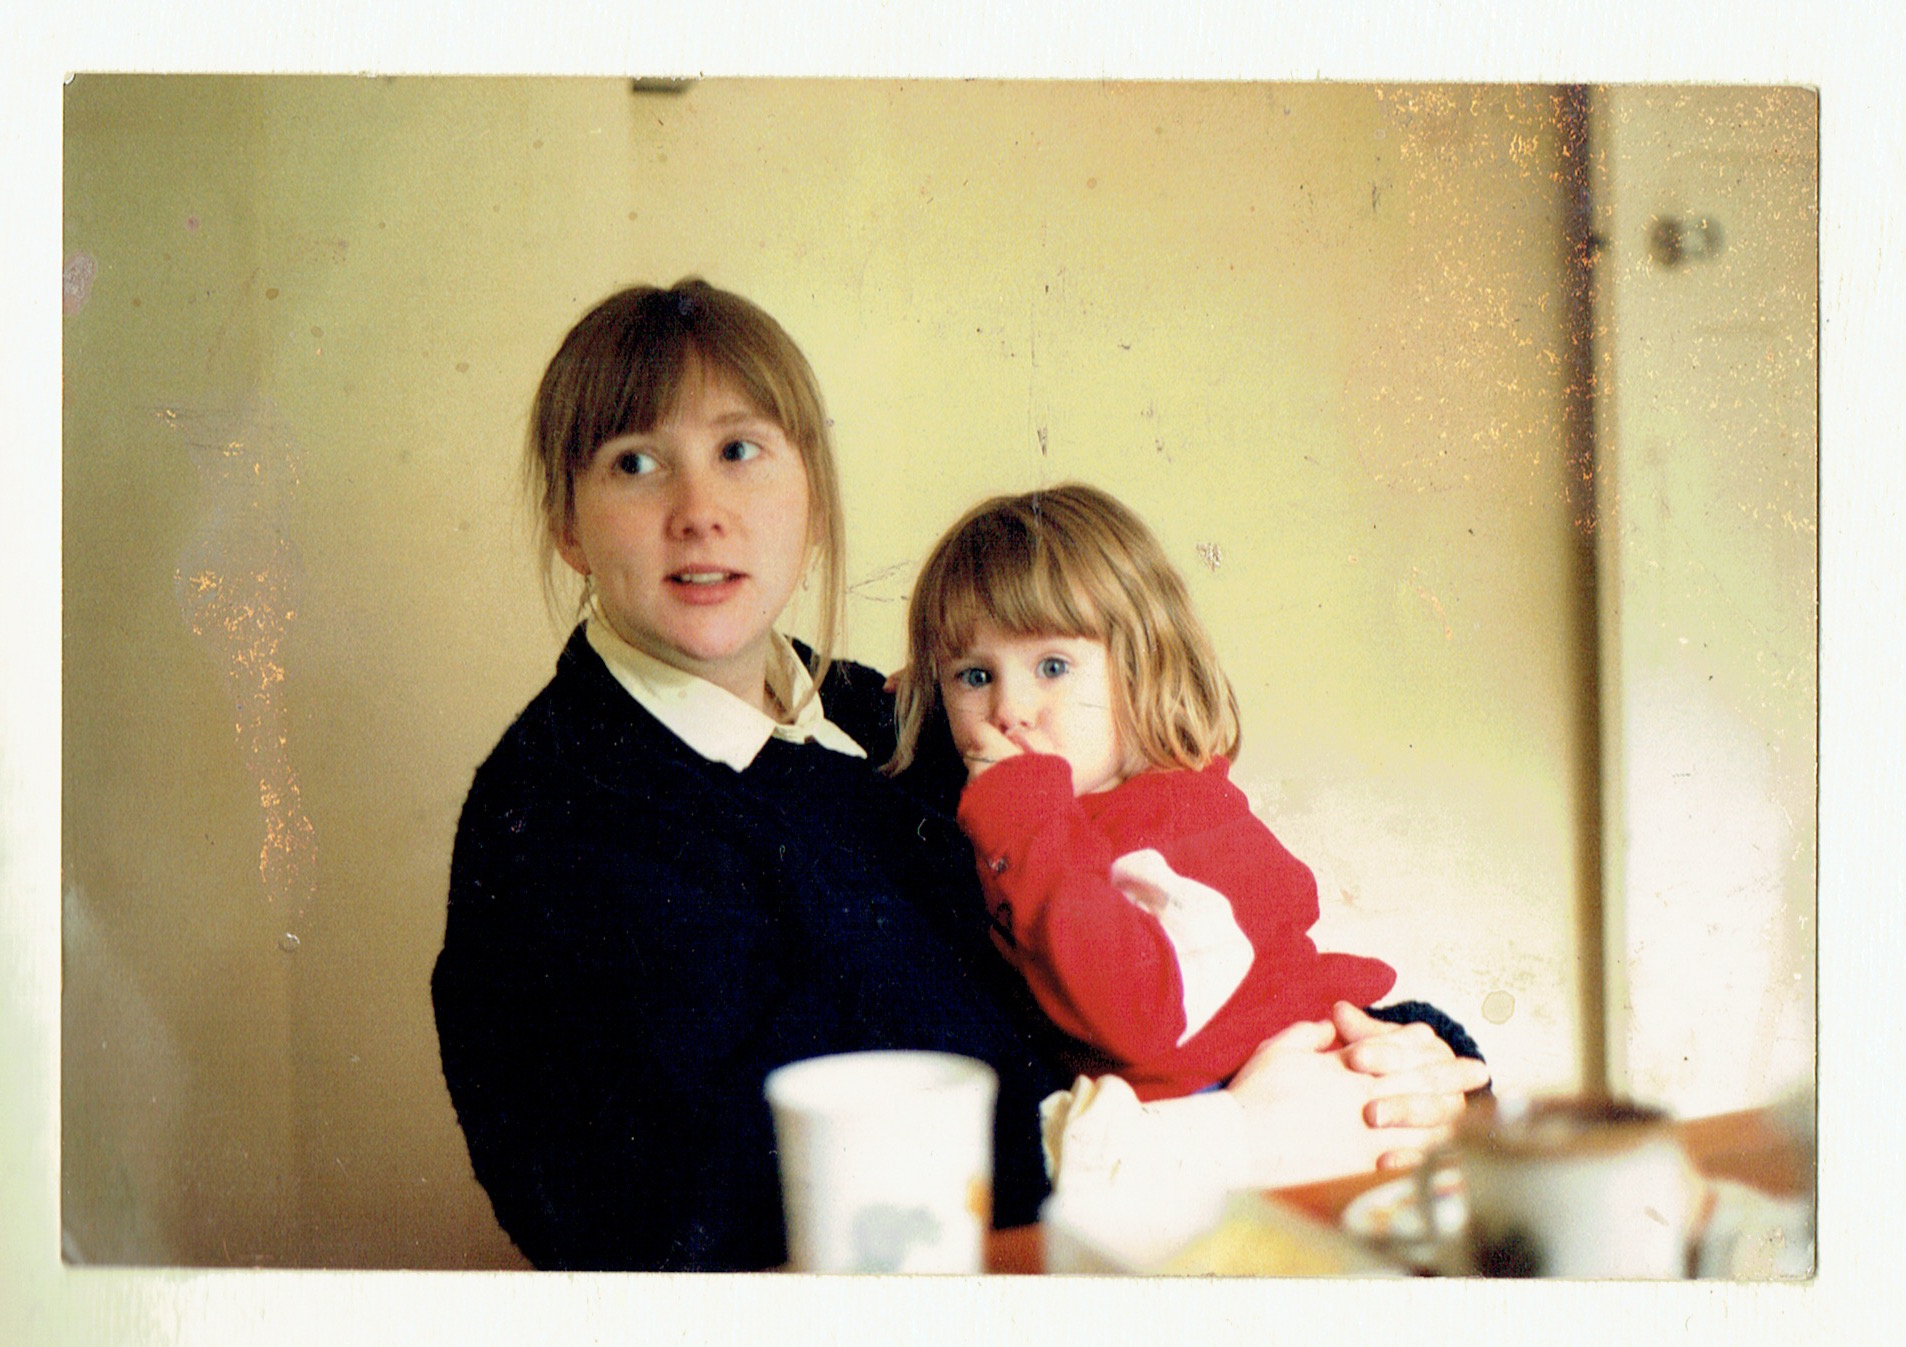 Young Amanda and little Greta back in 1988, so sweet!